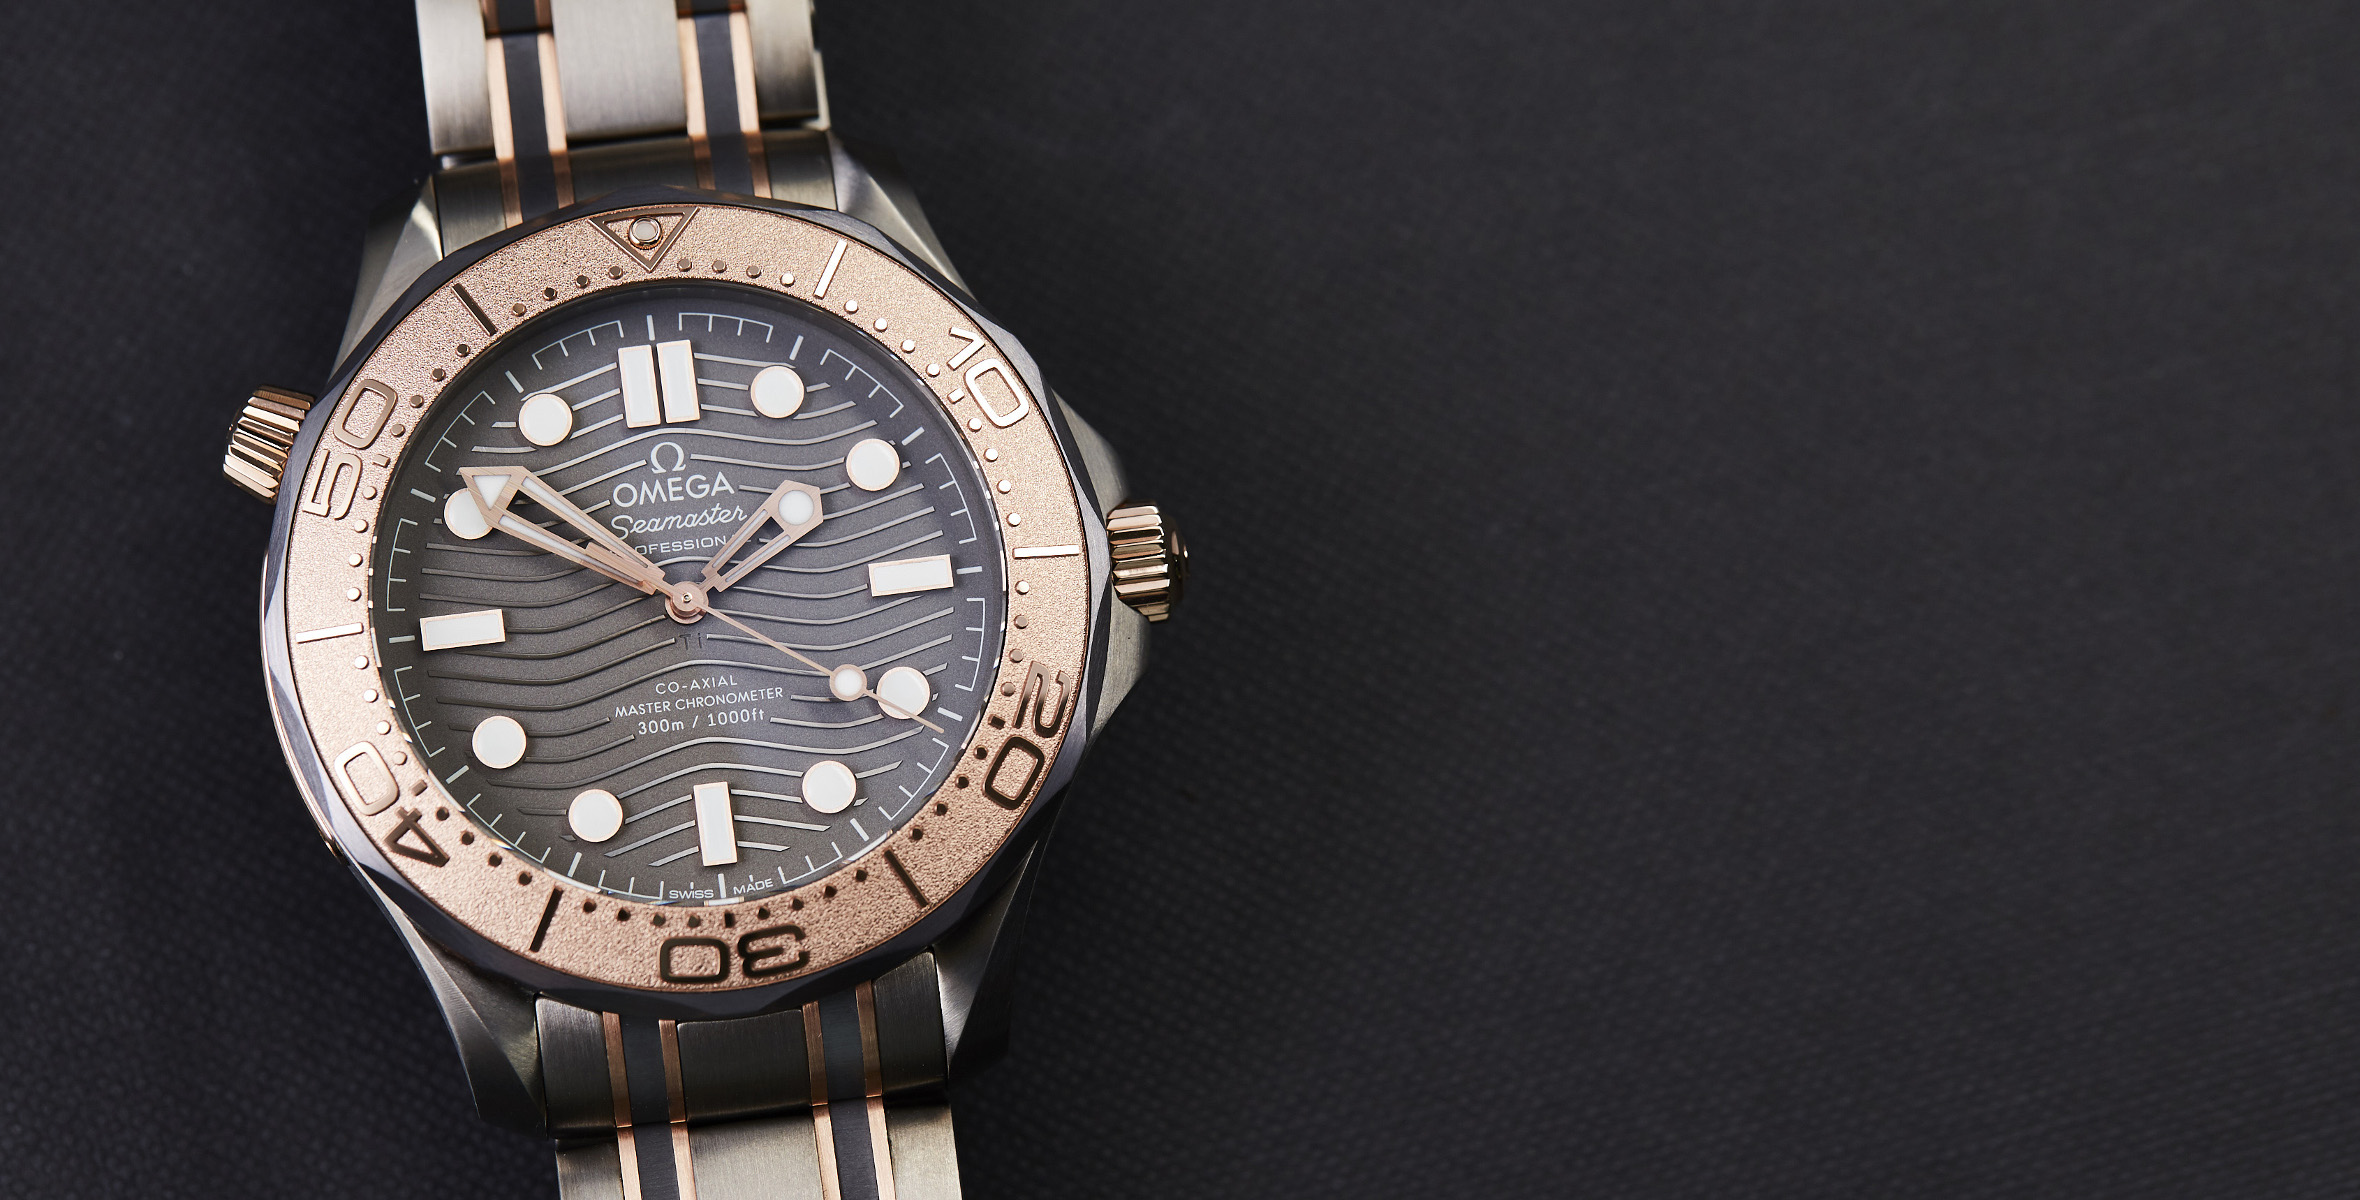 HANDS-ON: Tantalising Tantalum – the Omega Seamaster Diver 300M Limited Edition